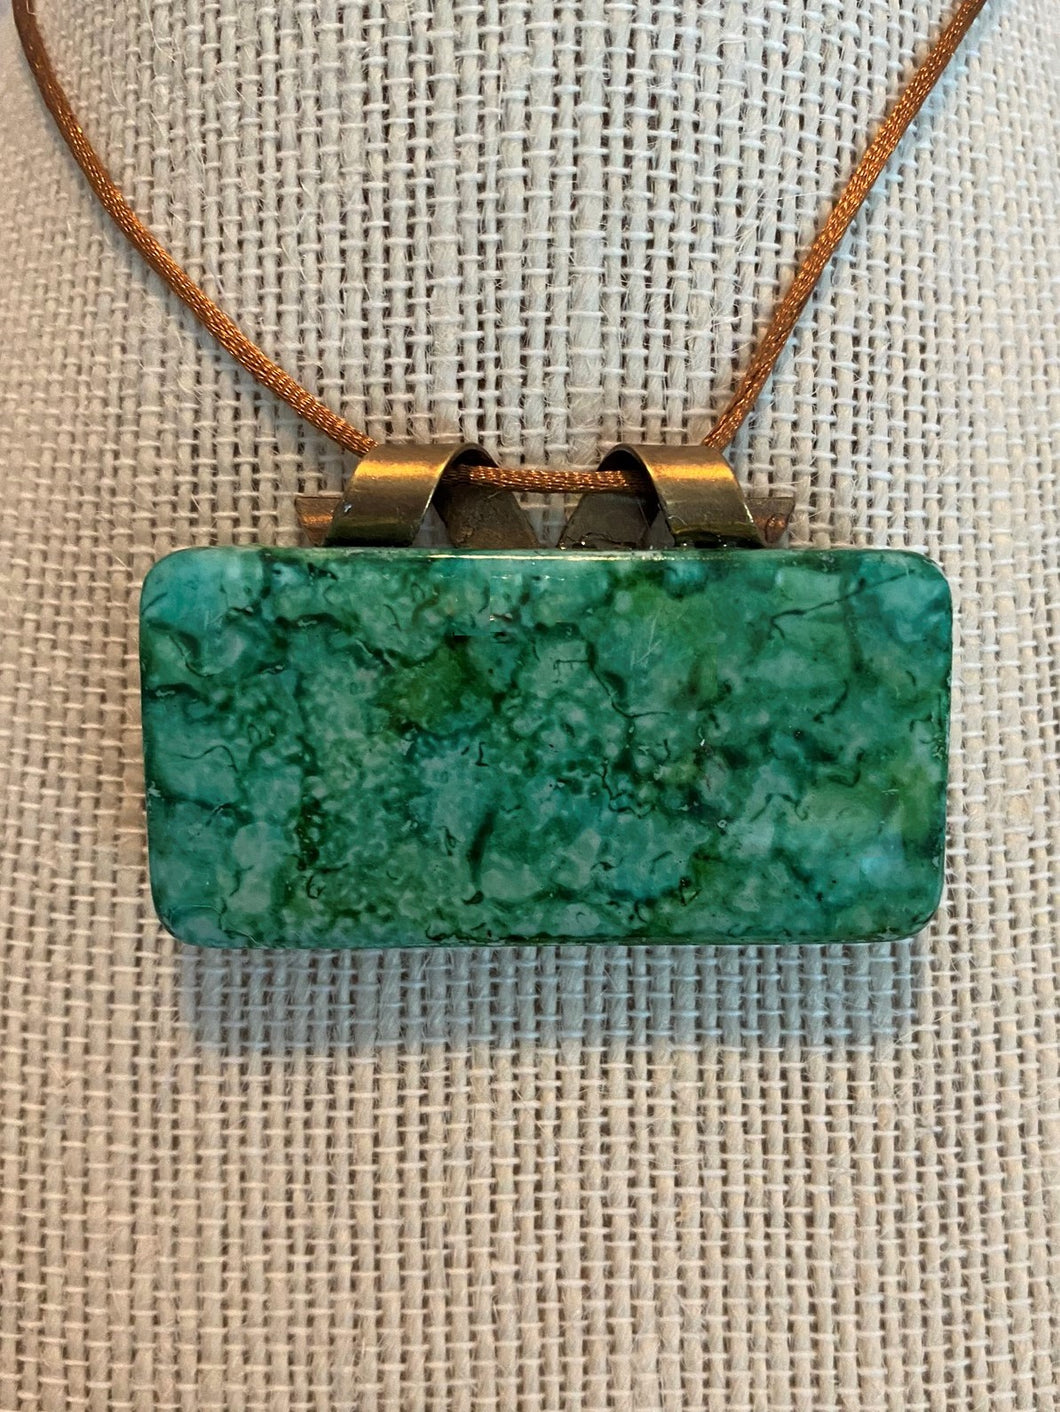 Emerald and Teal Domino Pendant